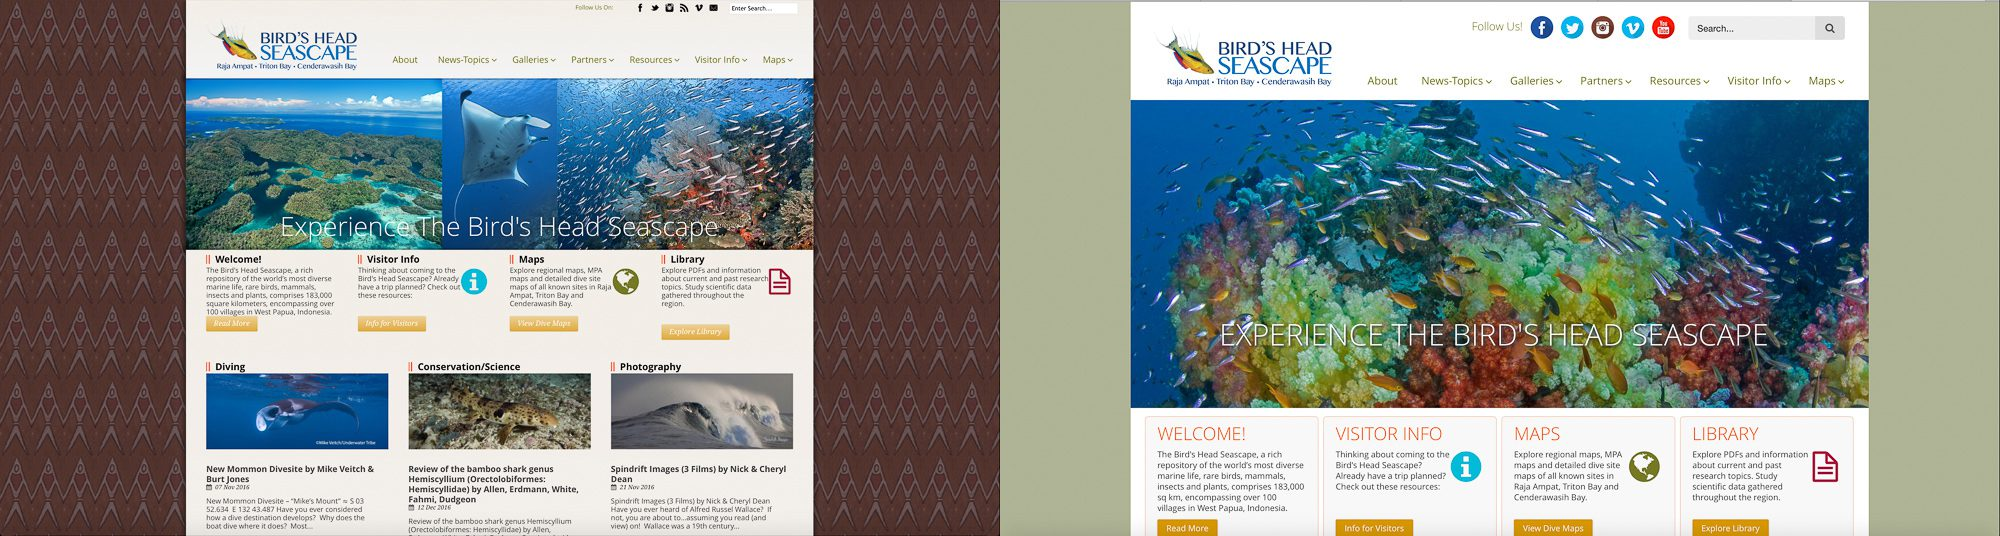 Newmediasoup-Birds-Head-Seascape-Home-Page-Before-After